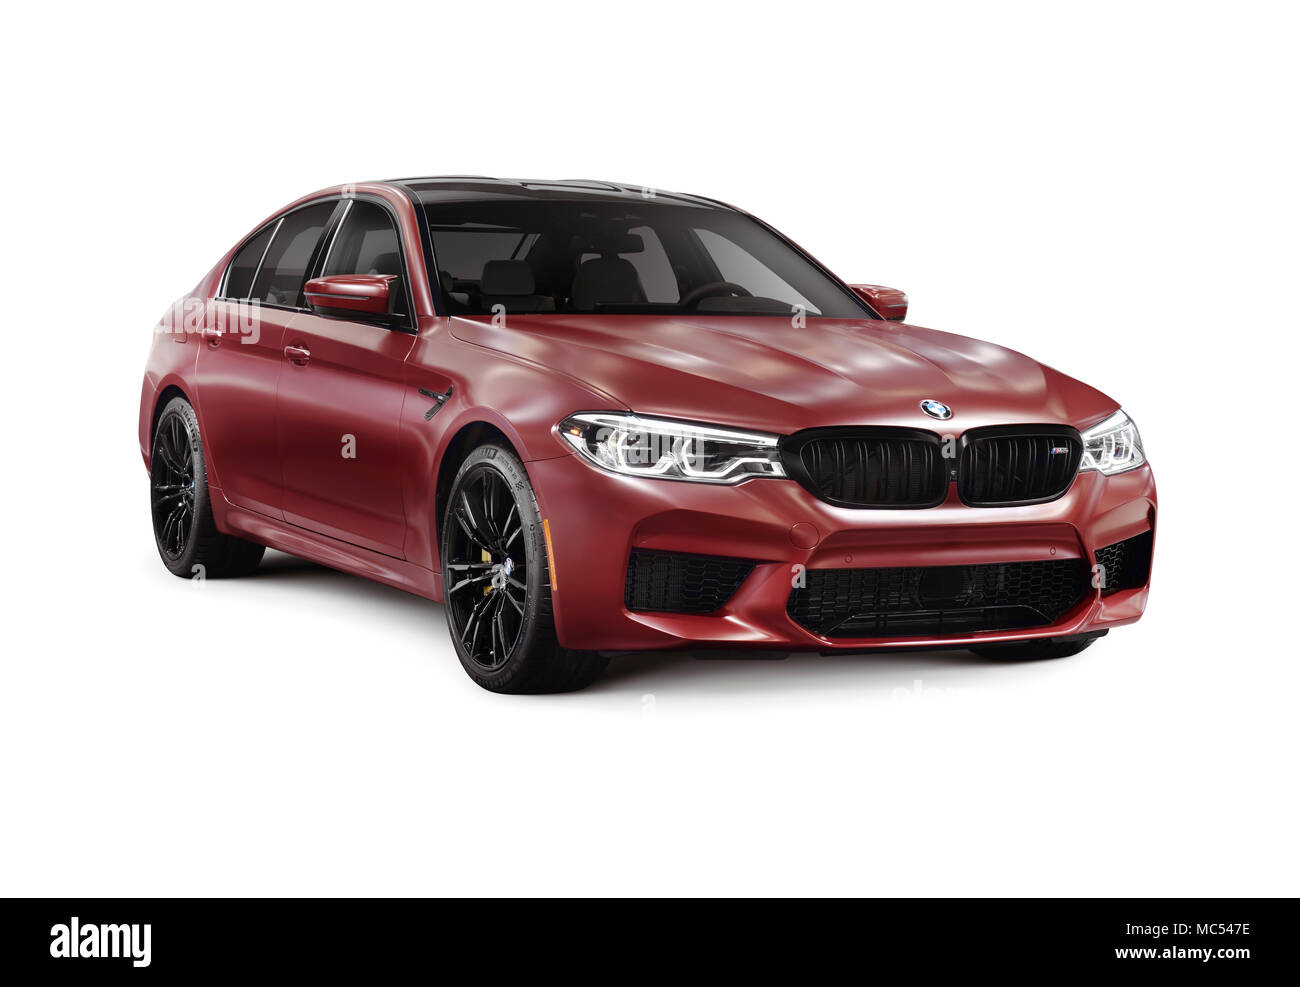 Sixth-generation BMW M5 with M xDrive, 2018 performance car, luxury sport sedan, 5-series in dark red, burgundy matte color. Isolated with a clipping  - Stock Image